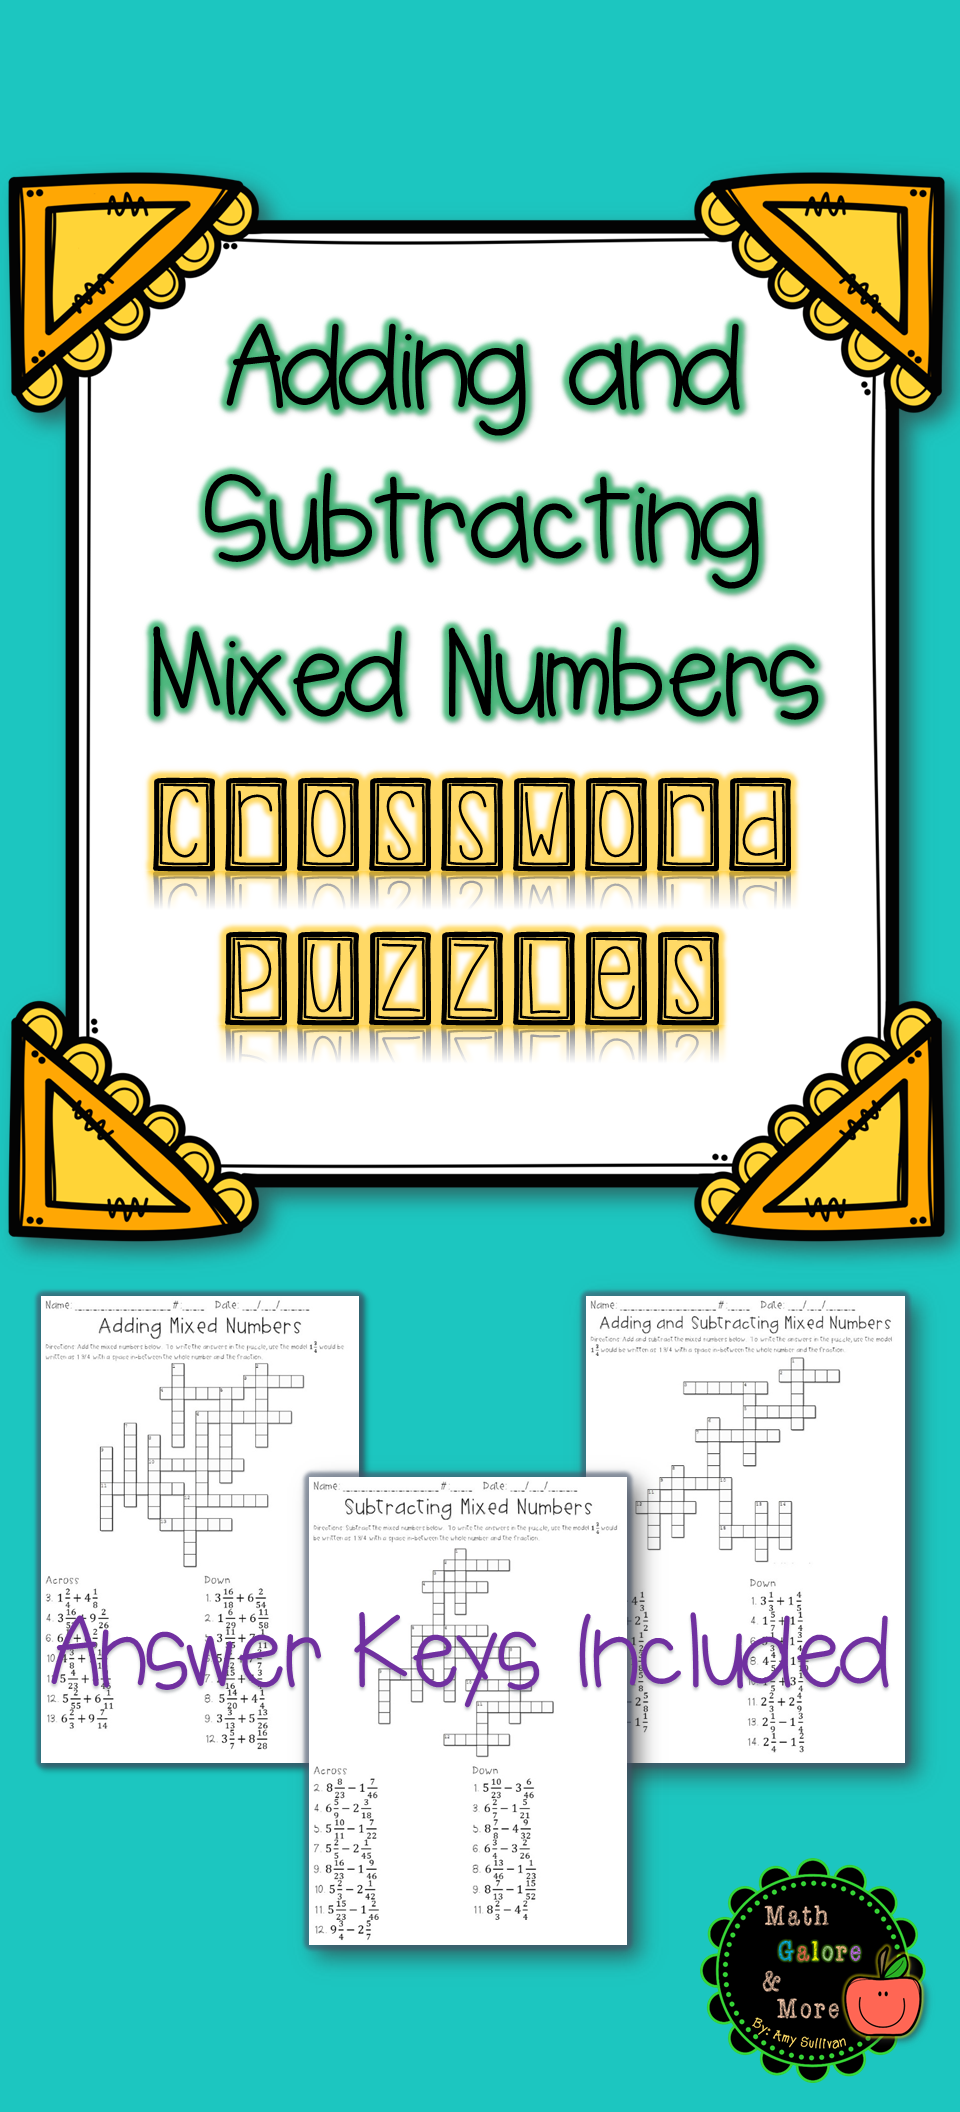 Adding and Subtracting Mixed Numbers Crossword Puzzle Activity ...